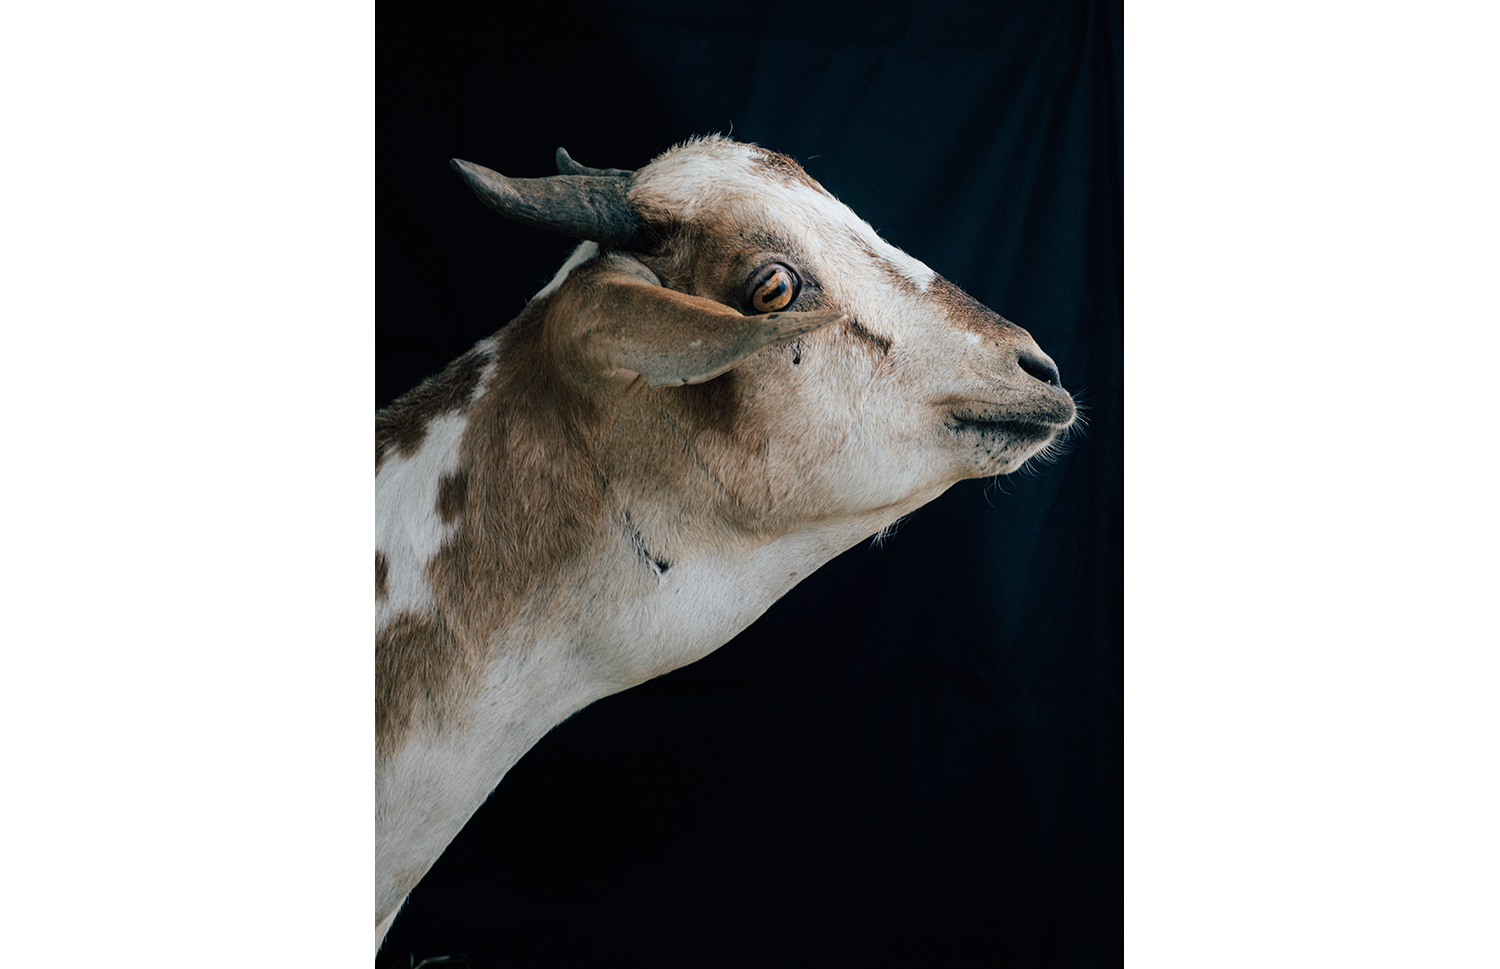 ijfkeridgley-oman-goat-portrait1.jpg